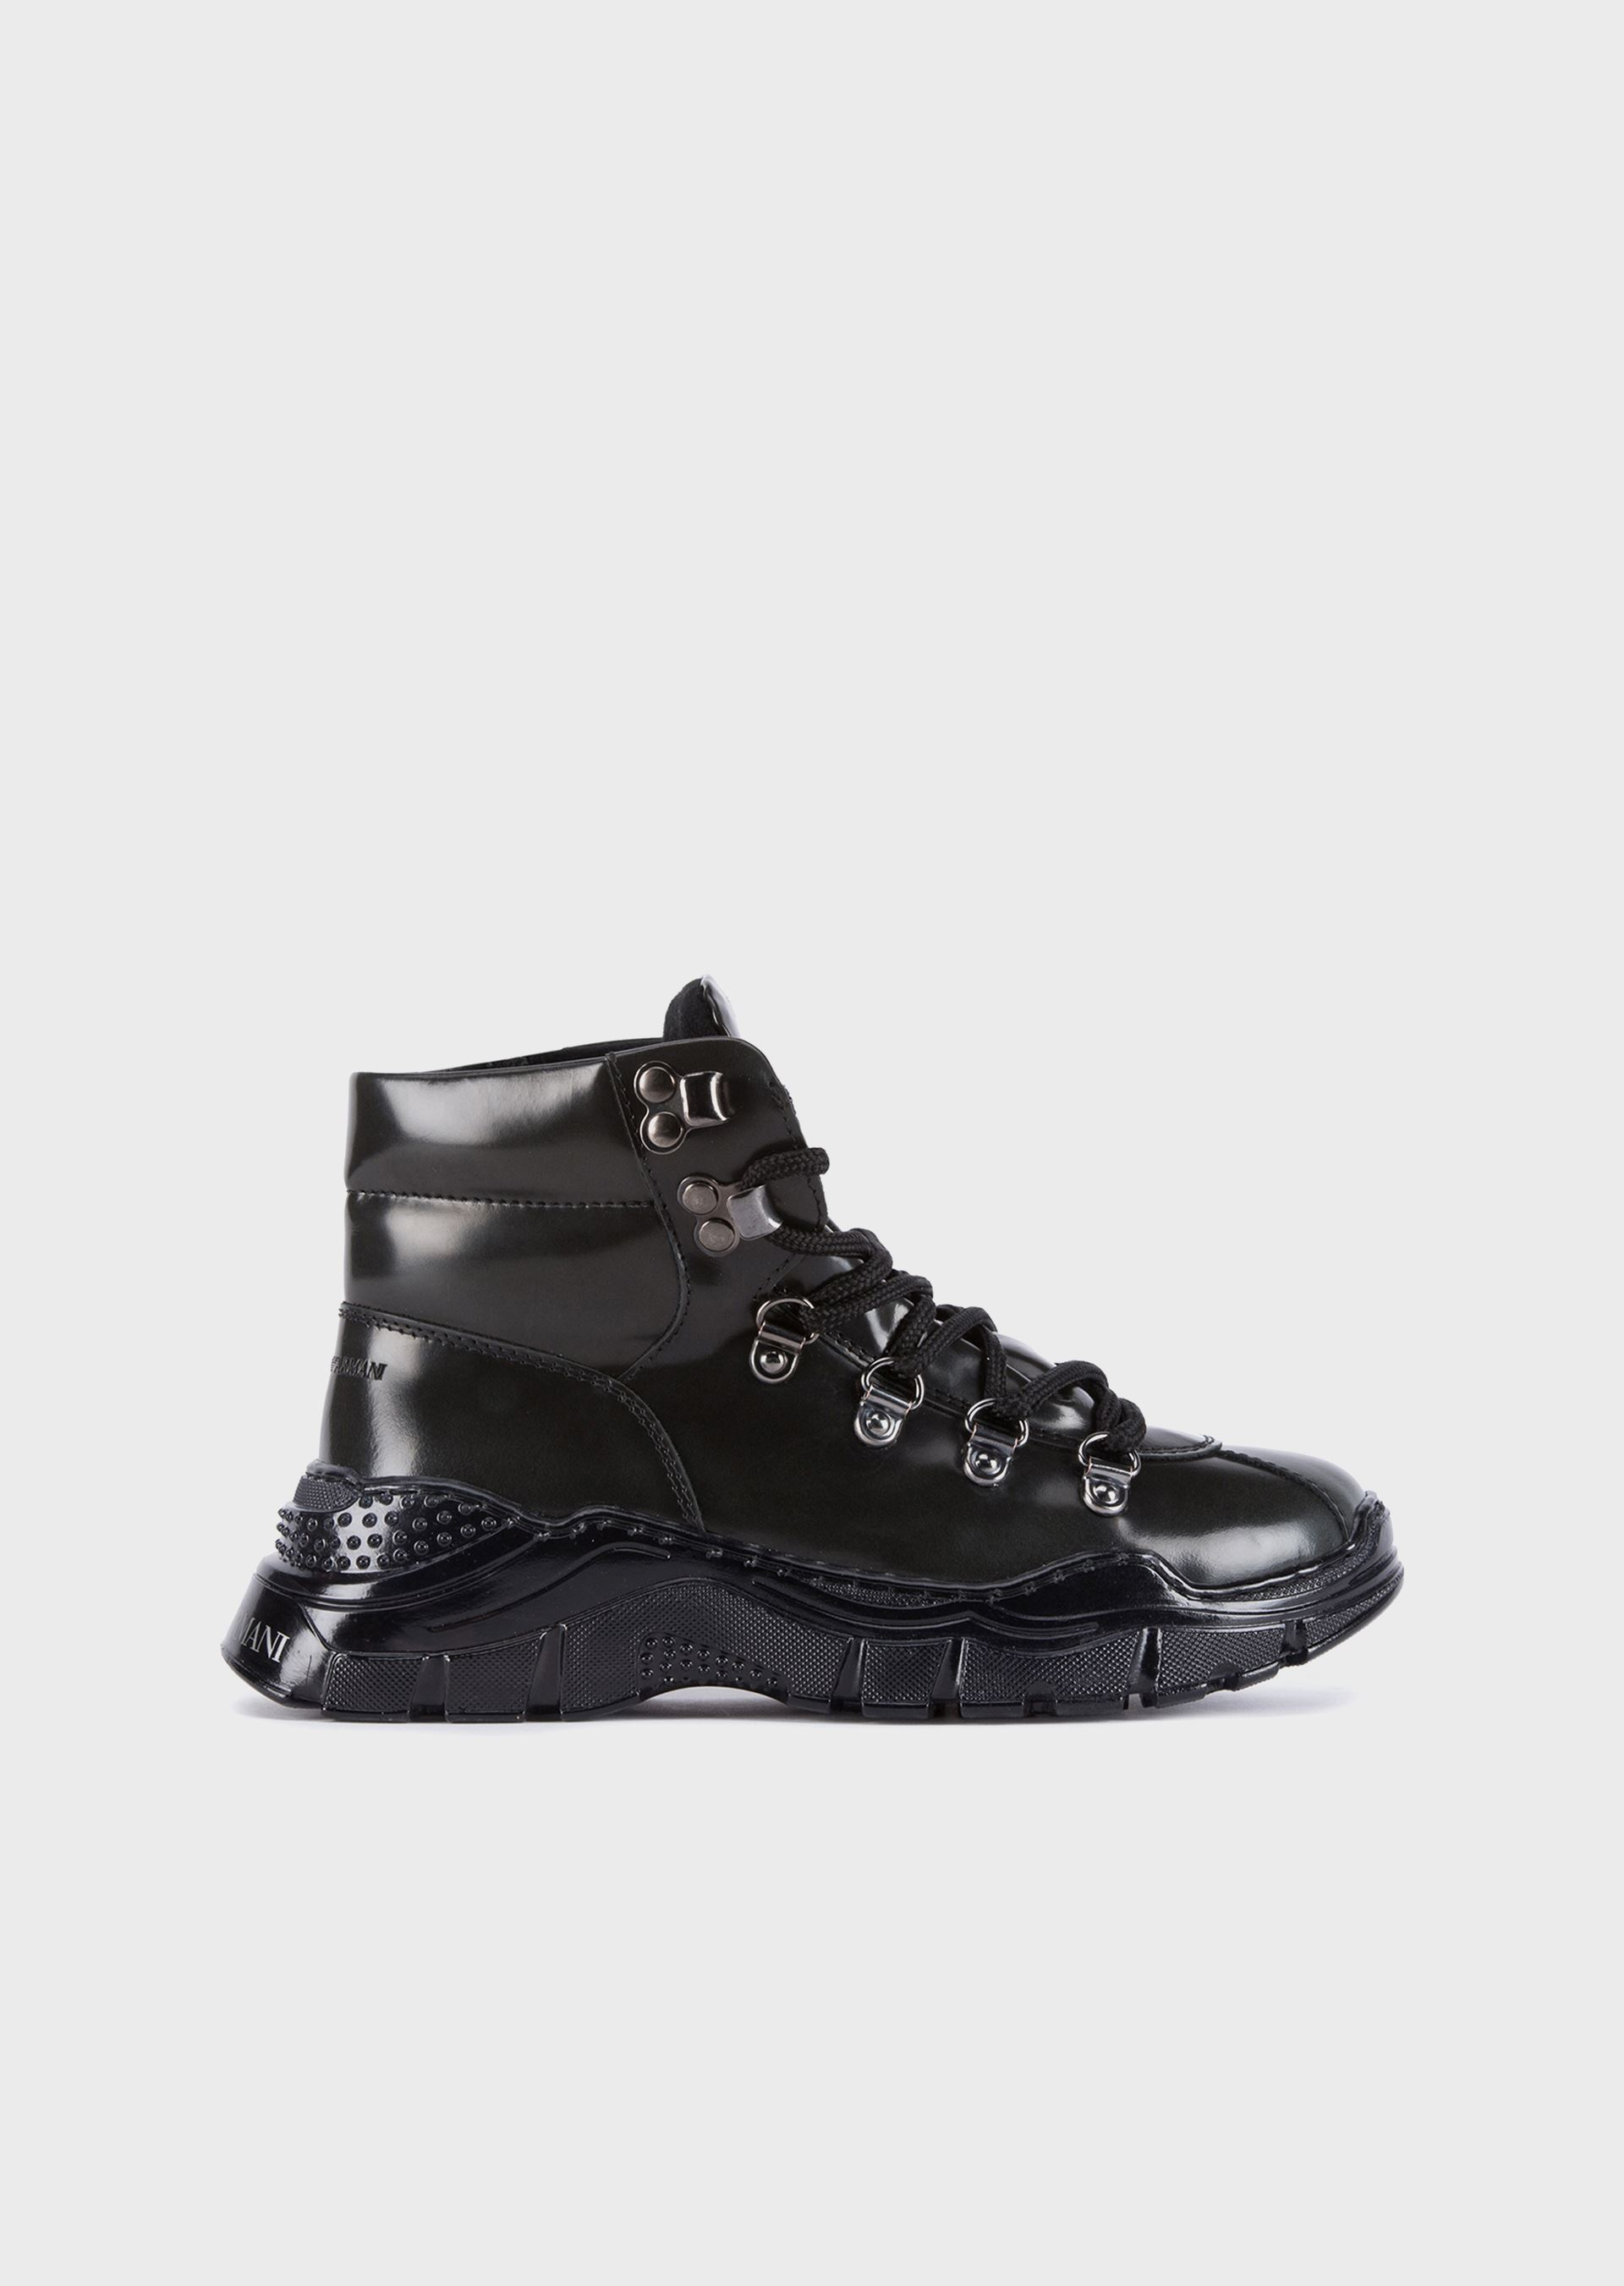 EMPORIO ARMANI Glossy brush-off leather hiking boots